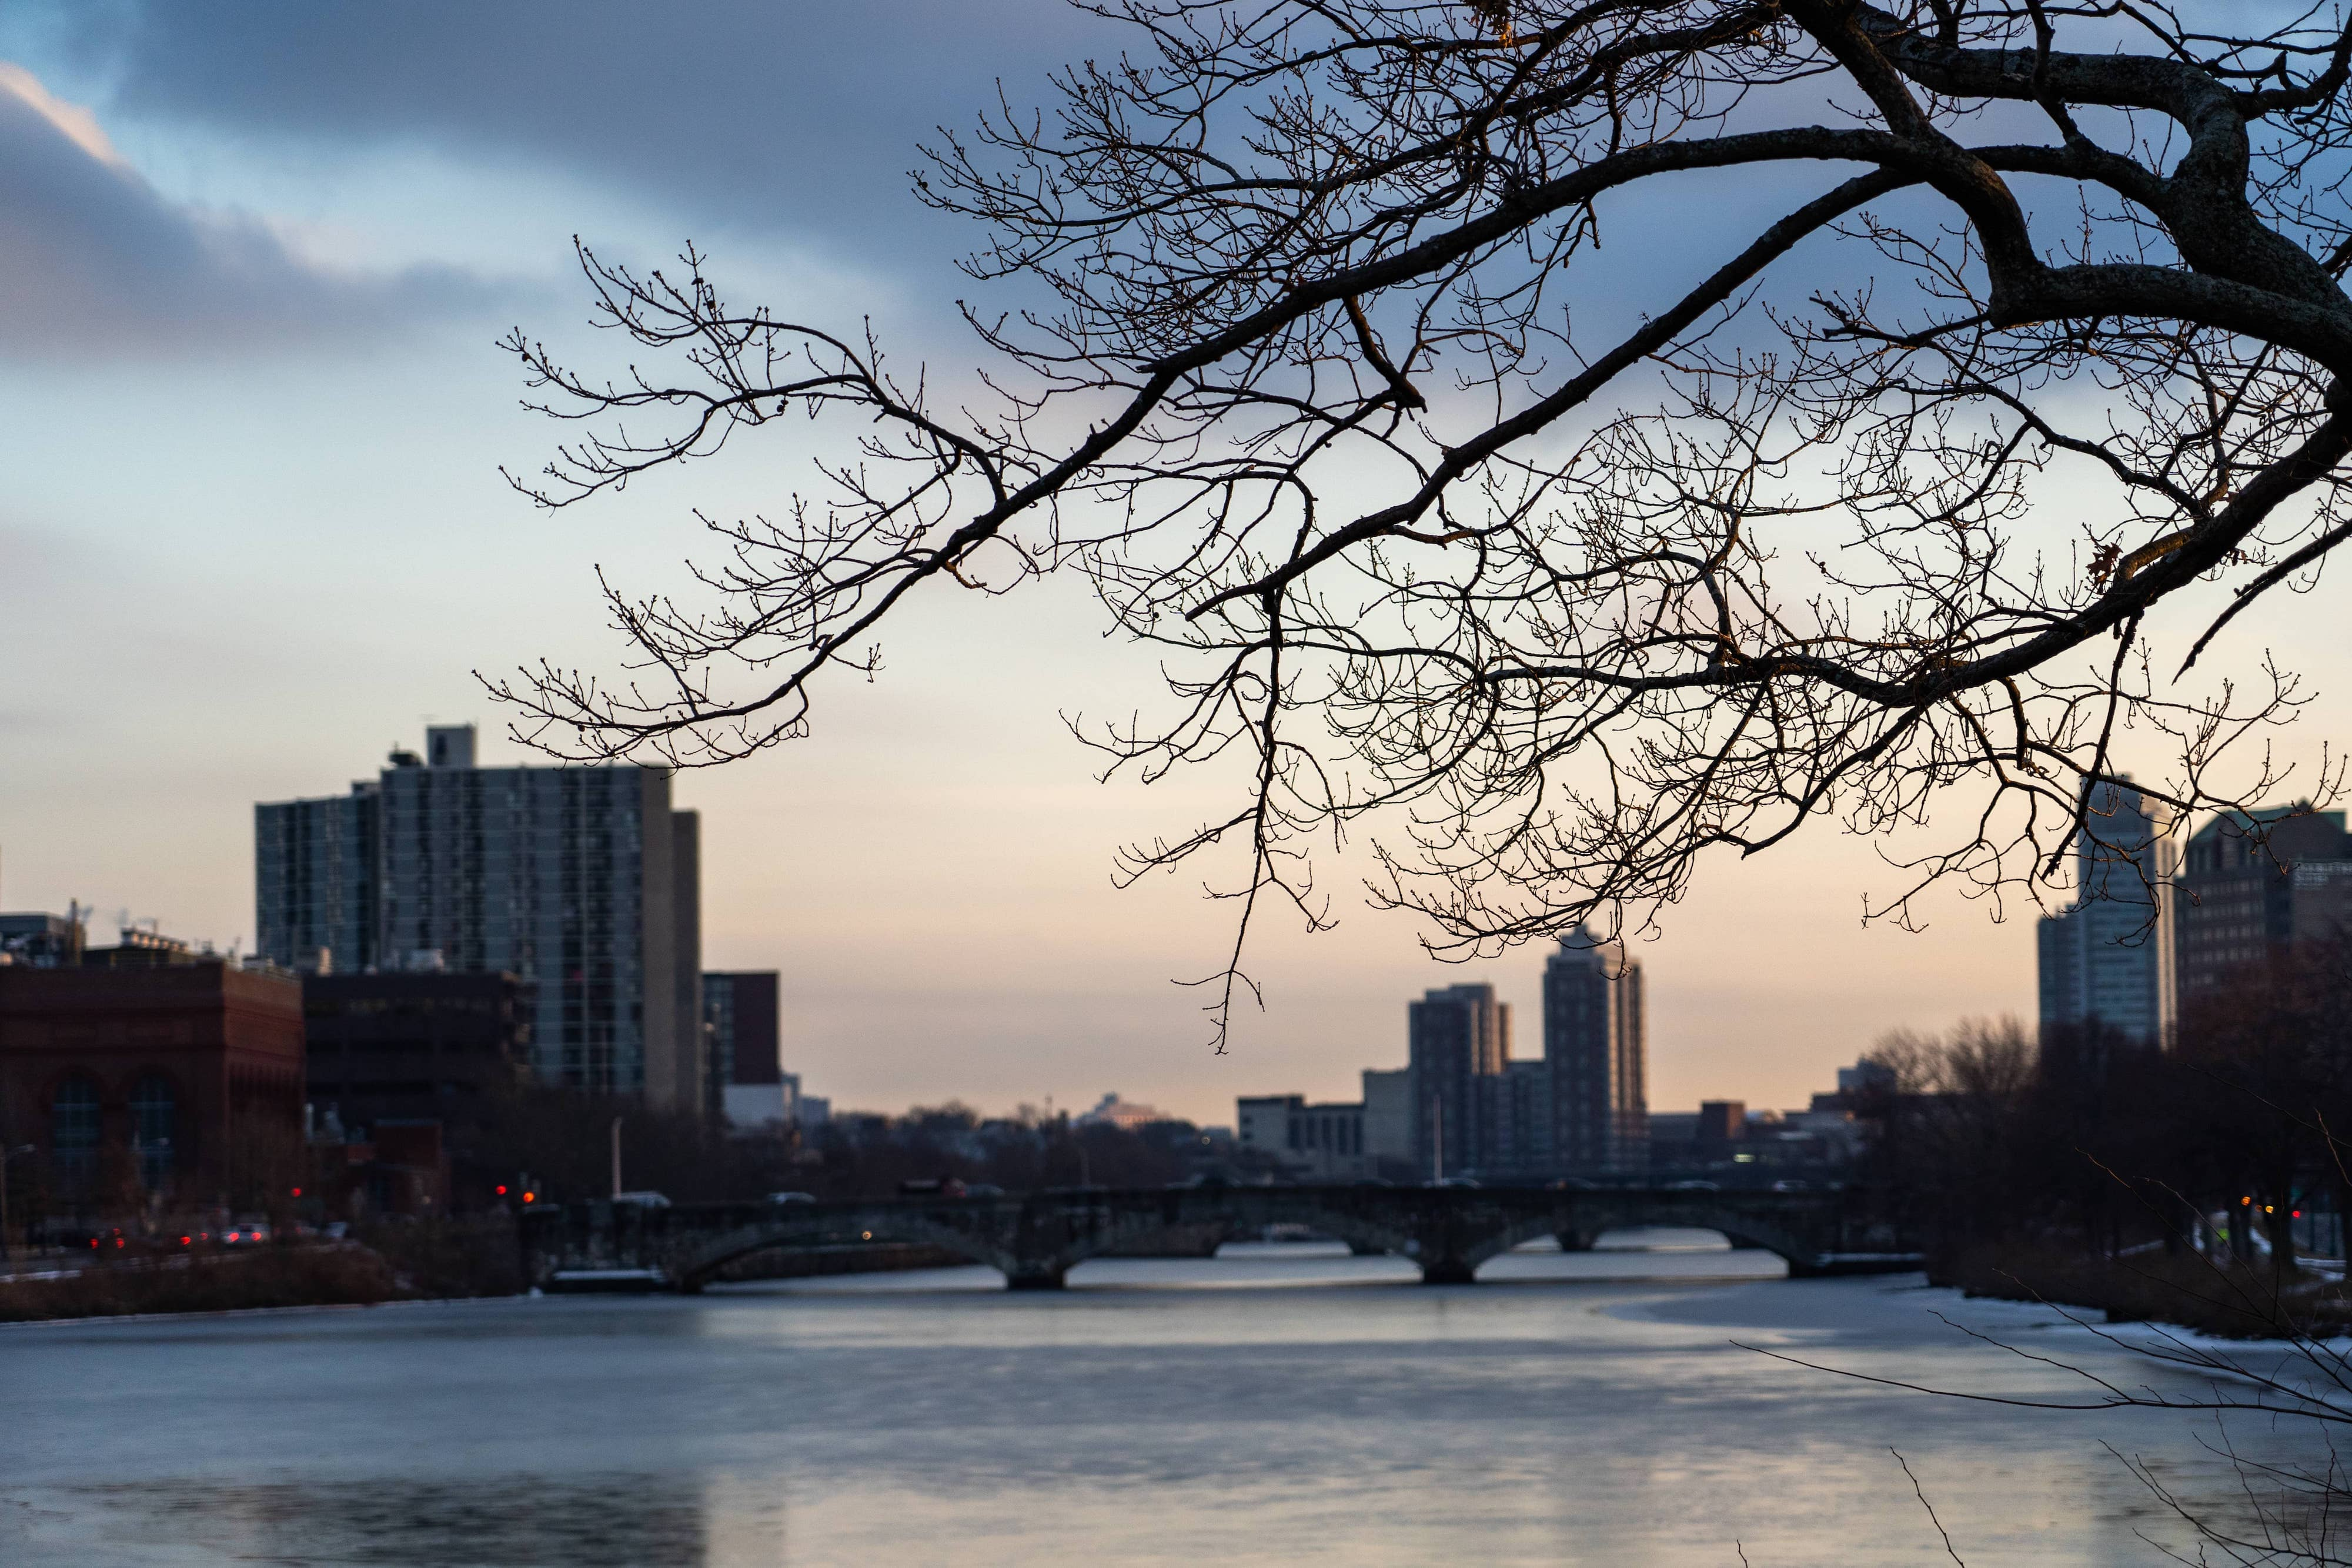 Photo of tree branch in foreground, river and bridge in background.